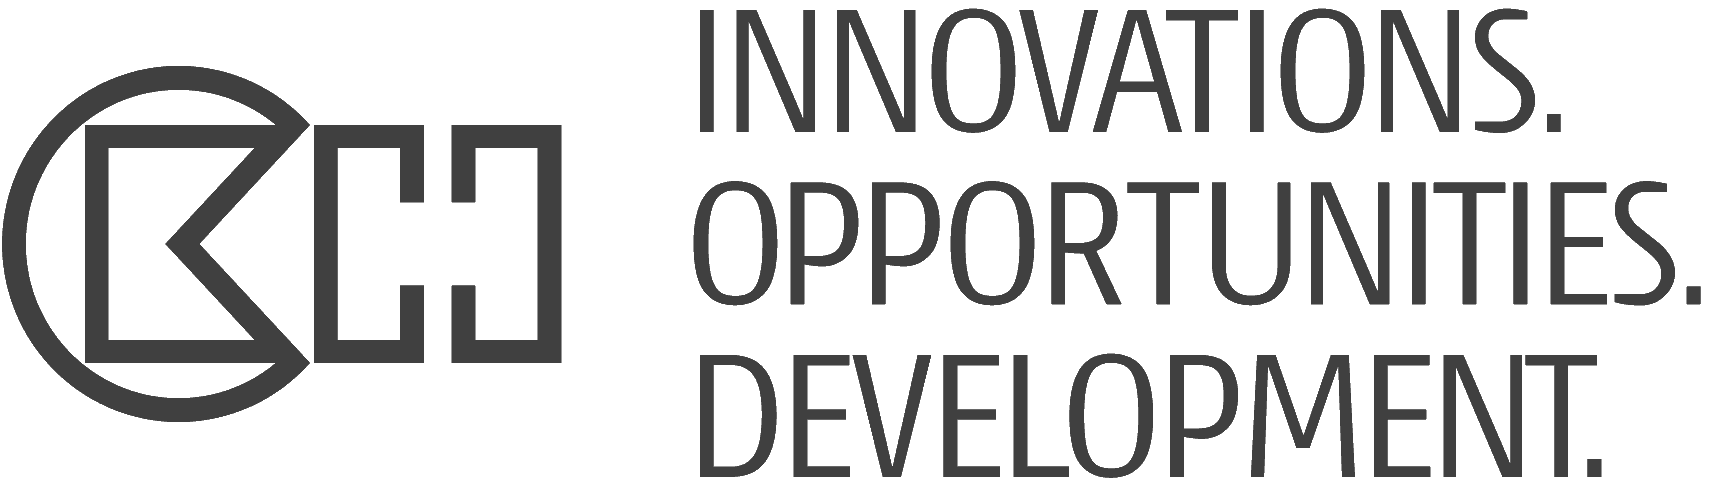 CKH Innovations Opportunities Development